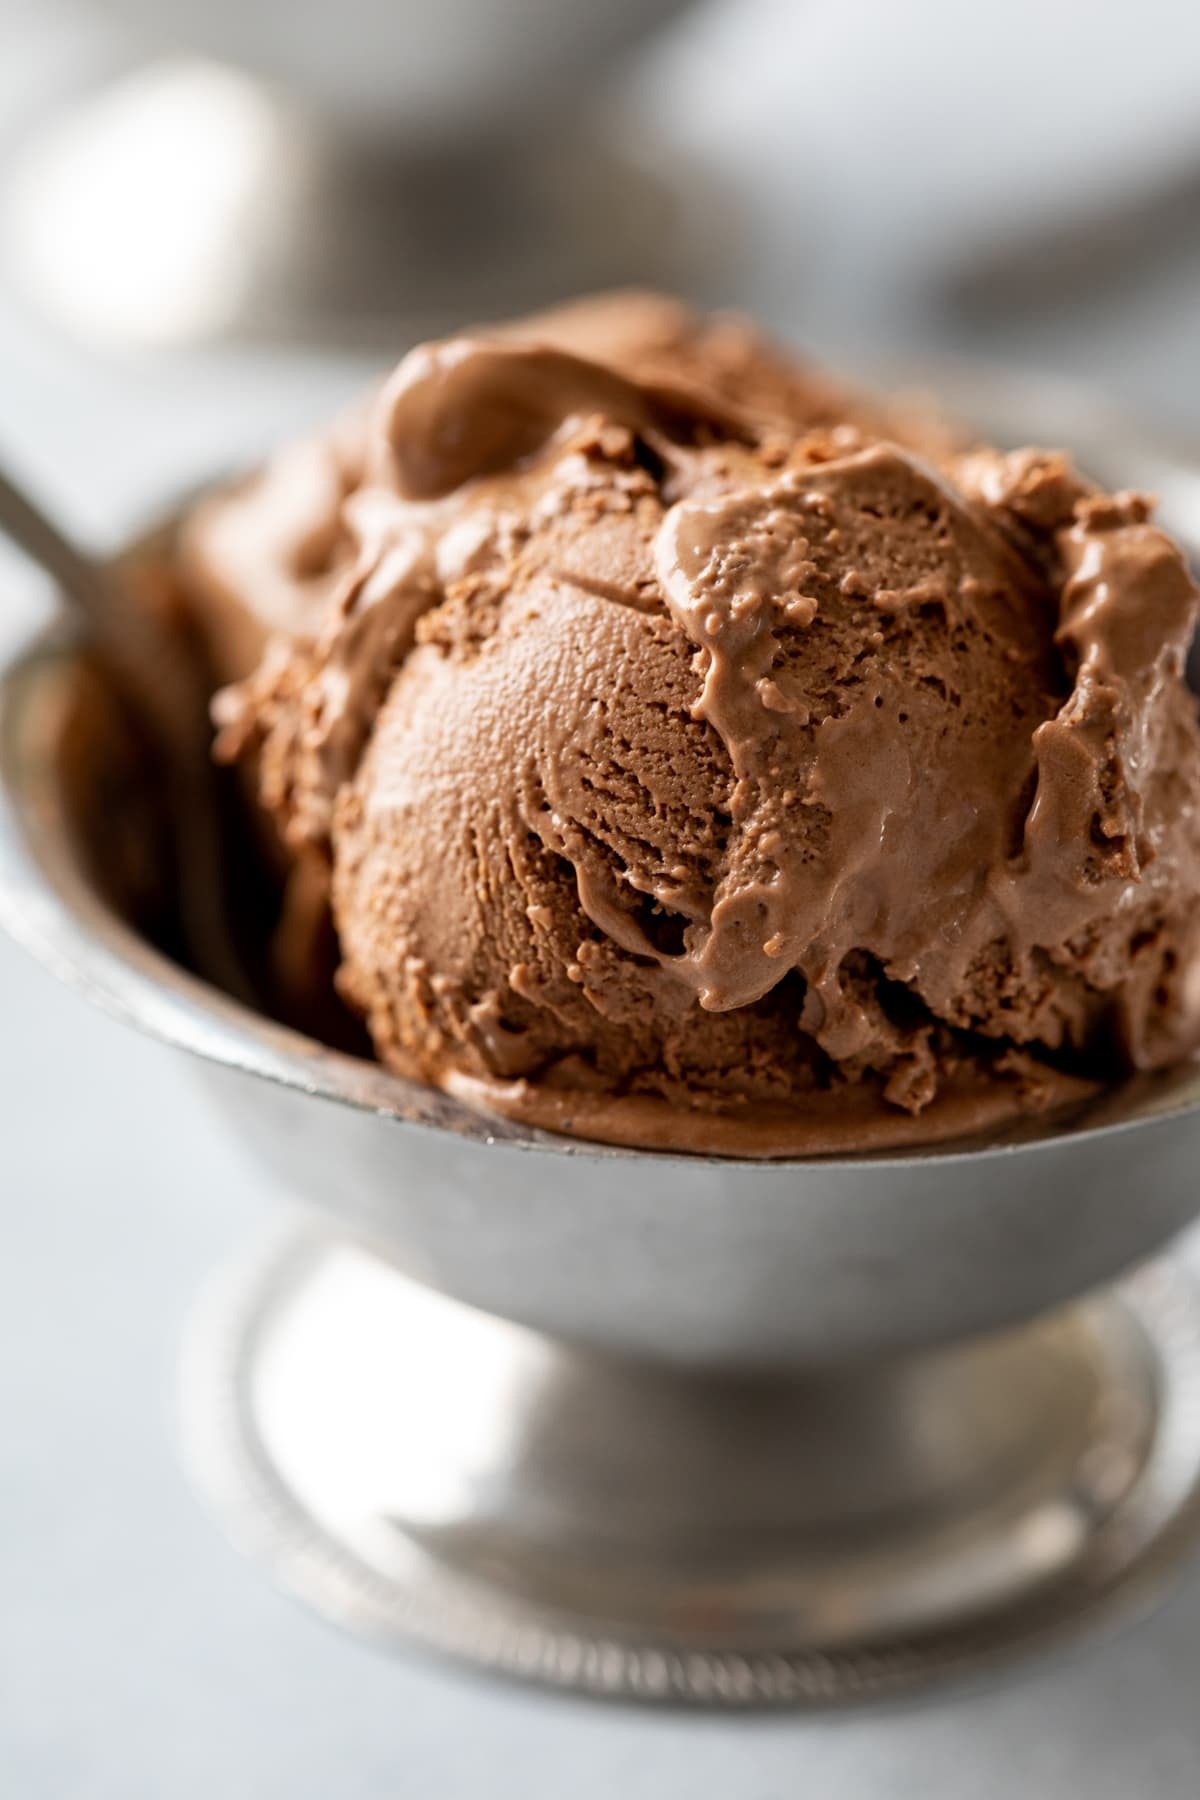 close up of texture of chocolate dairy-free ice cream, 2 scoops in a bowl